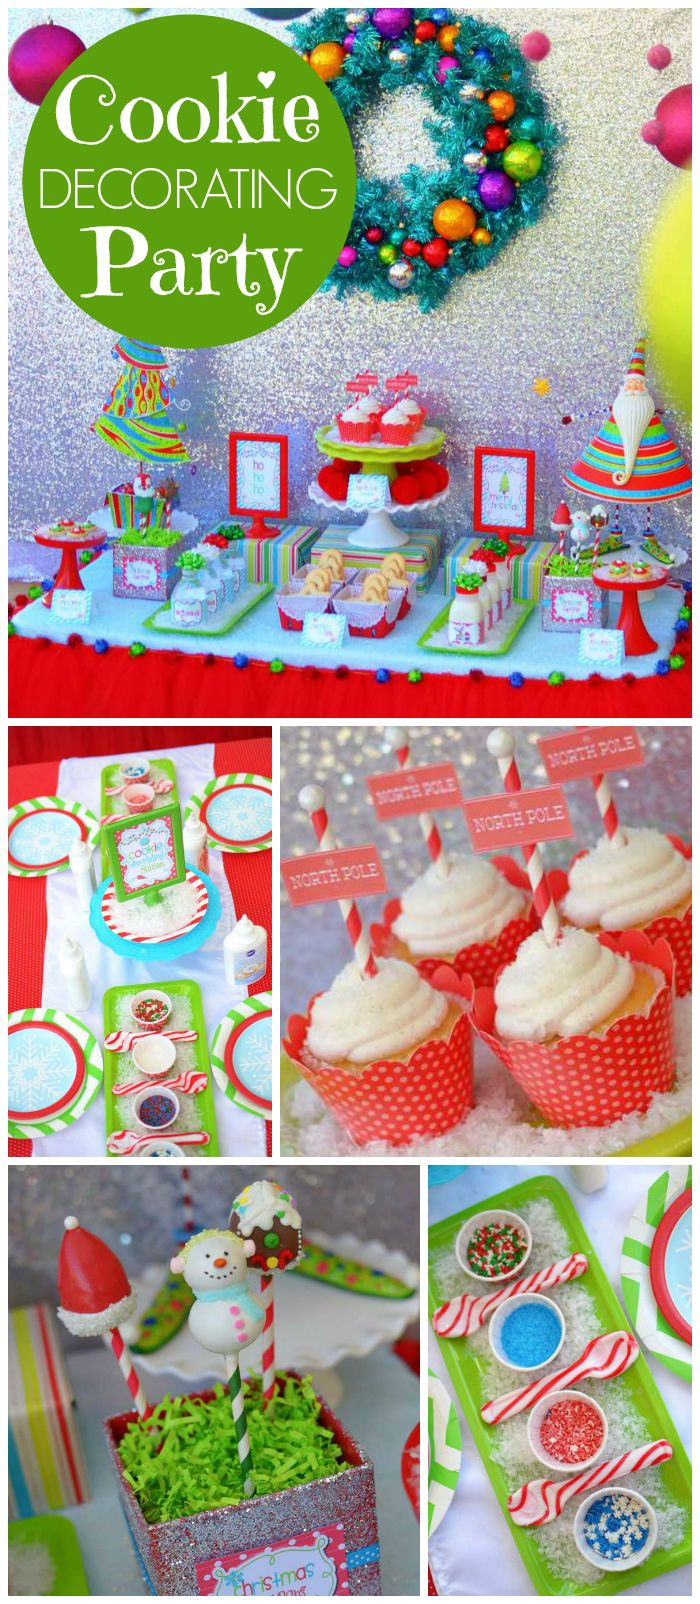 Cookie decorating party ideas - A Fun Cookie Decorating Party With Candy Cane Spoons Snowman Cookies And Cute Aprons